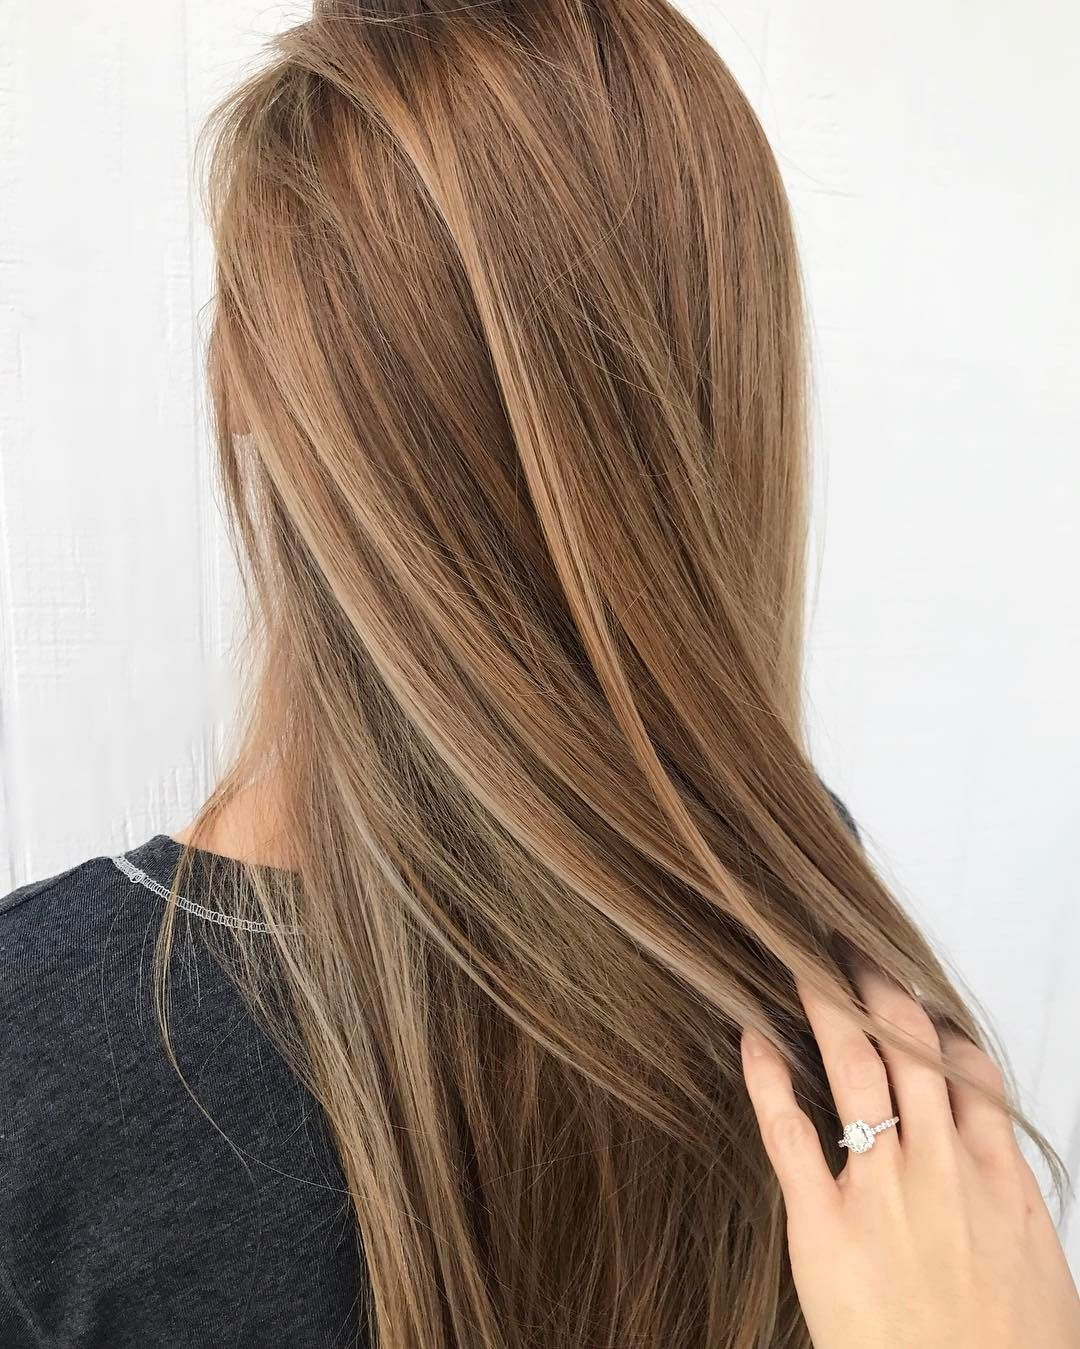 Dark Blonde Hair Possesses A Lot Of Depth And Definition That Is Hard To Replicate With Any Other Ha Hair Styles Blonde Brown Hair Color Hair Color Light Brown